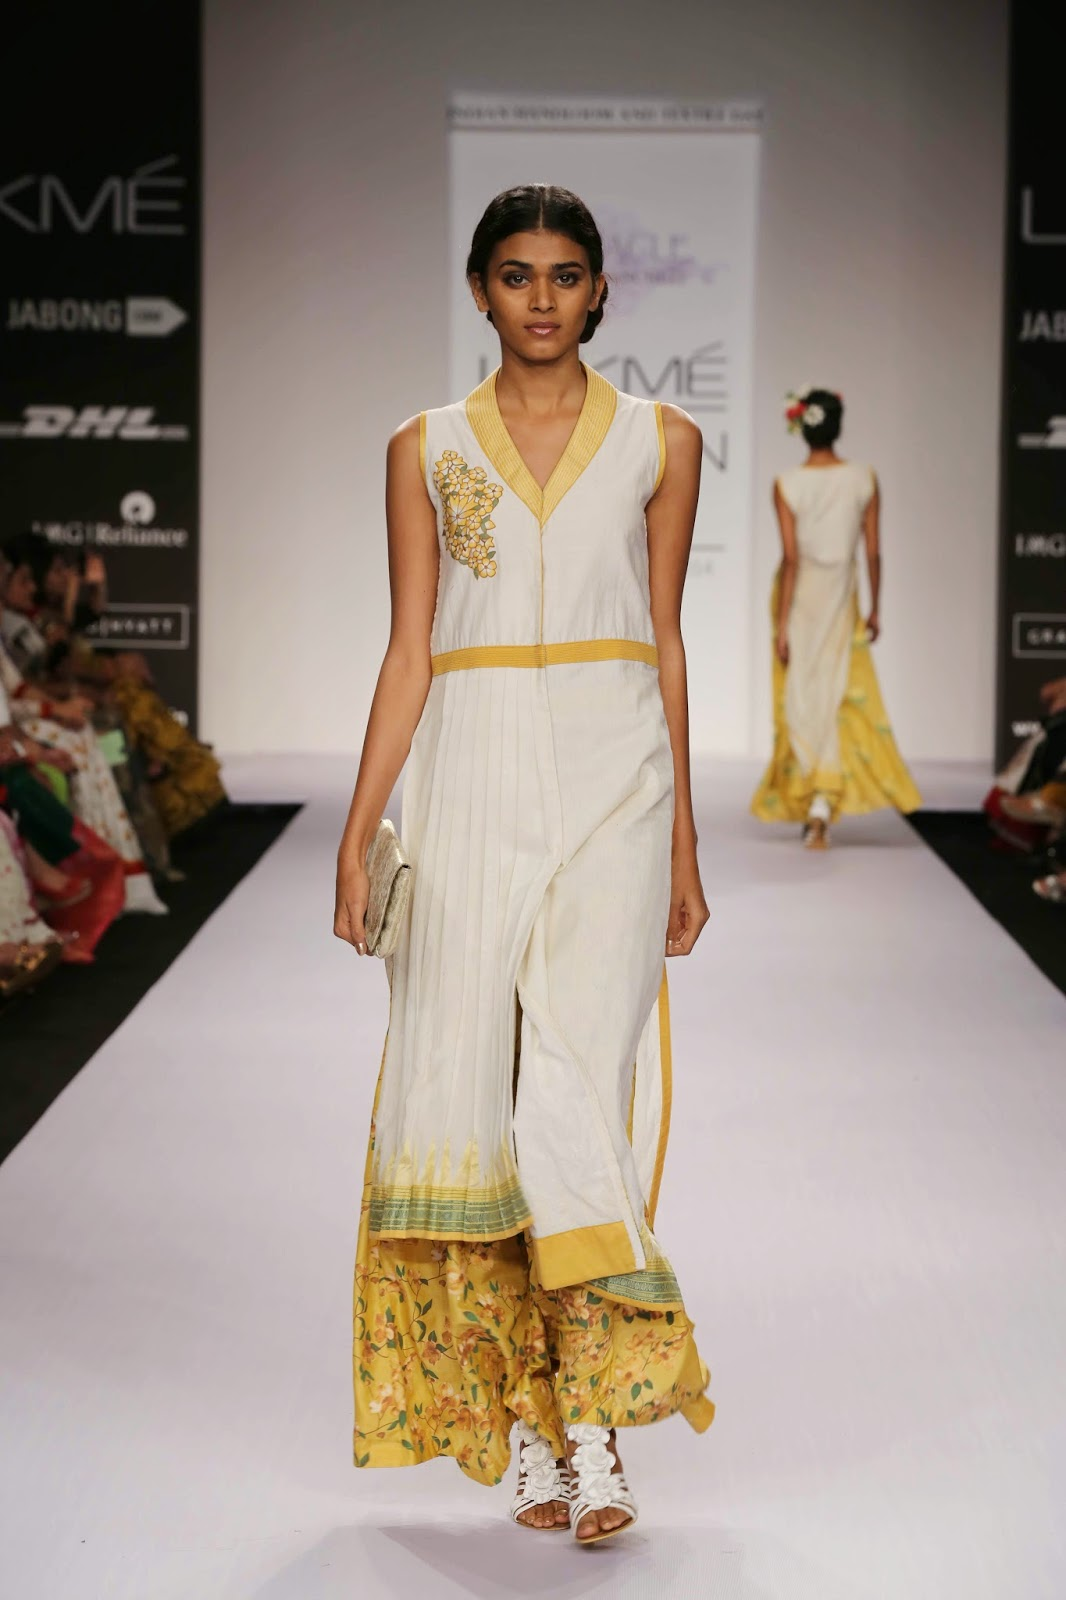 Indian silhouettes were added as kurtas, tunics and saris brought in the oriental flavour on the catwalk.